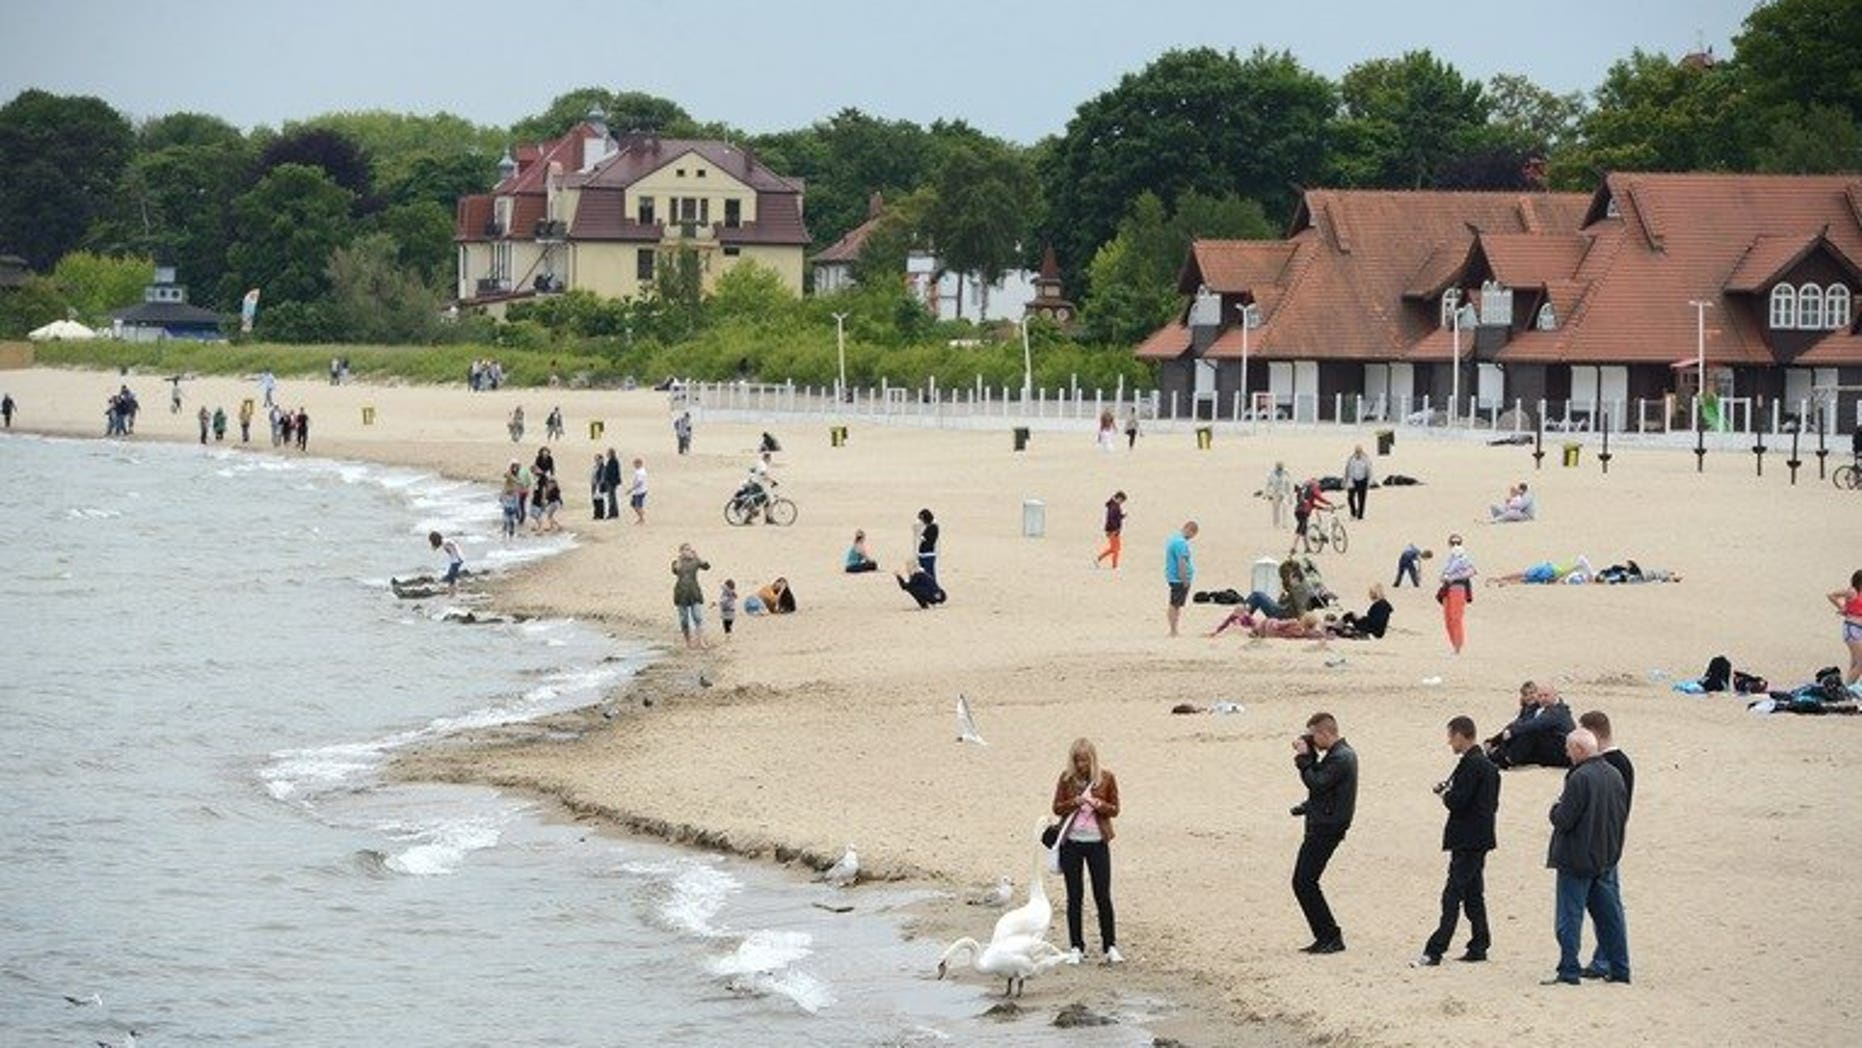 People relax on the beach on the Baltic Sea on June 7, 2012 in Sopot neer Gdansk. Mexico voiced concerns to Poland on Monday after a video surfaced of an alleged group of soccer hooligans mobbing Mexican navy cadets resting on a Polish beach.